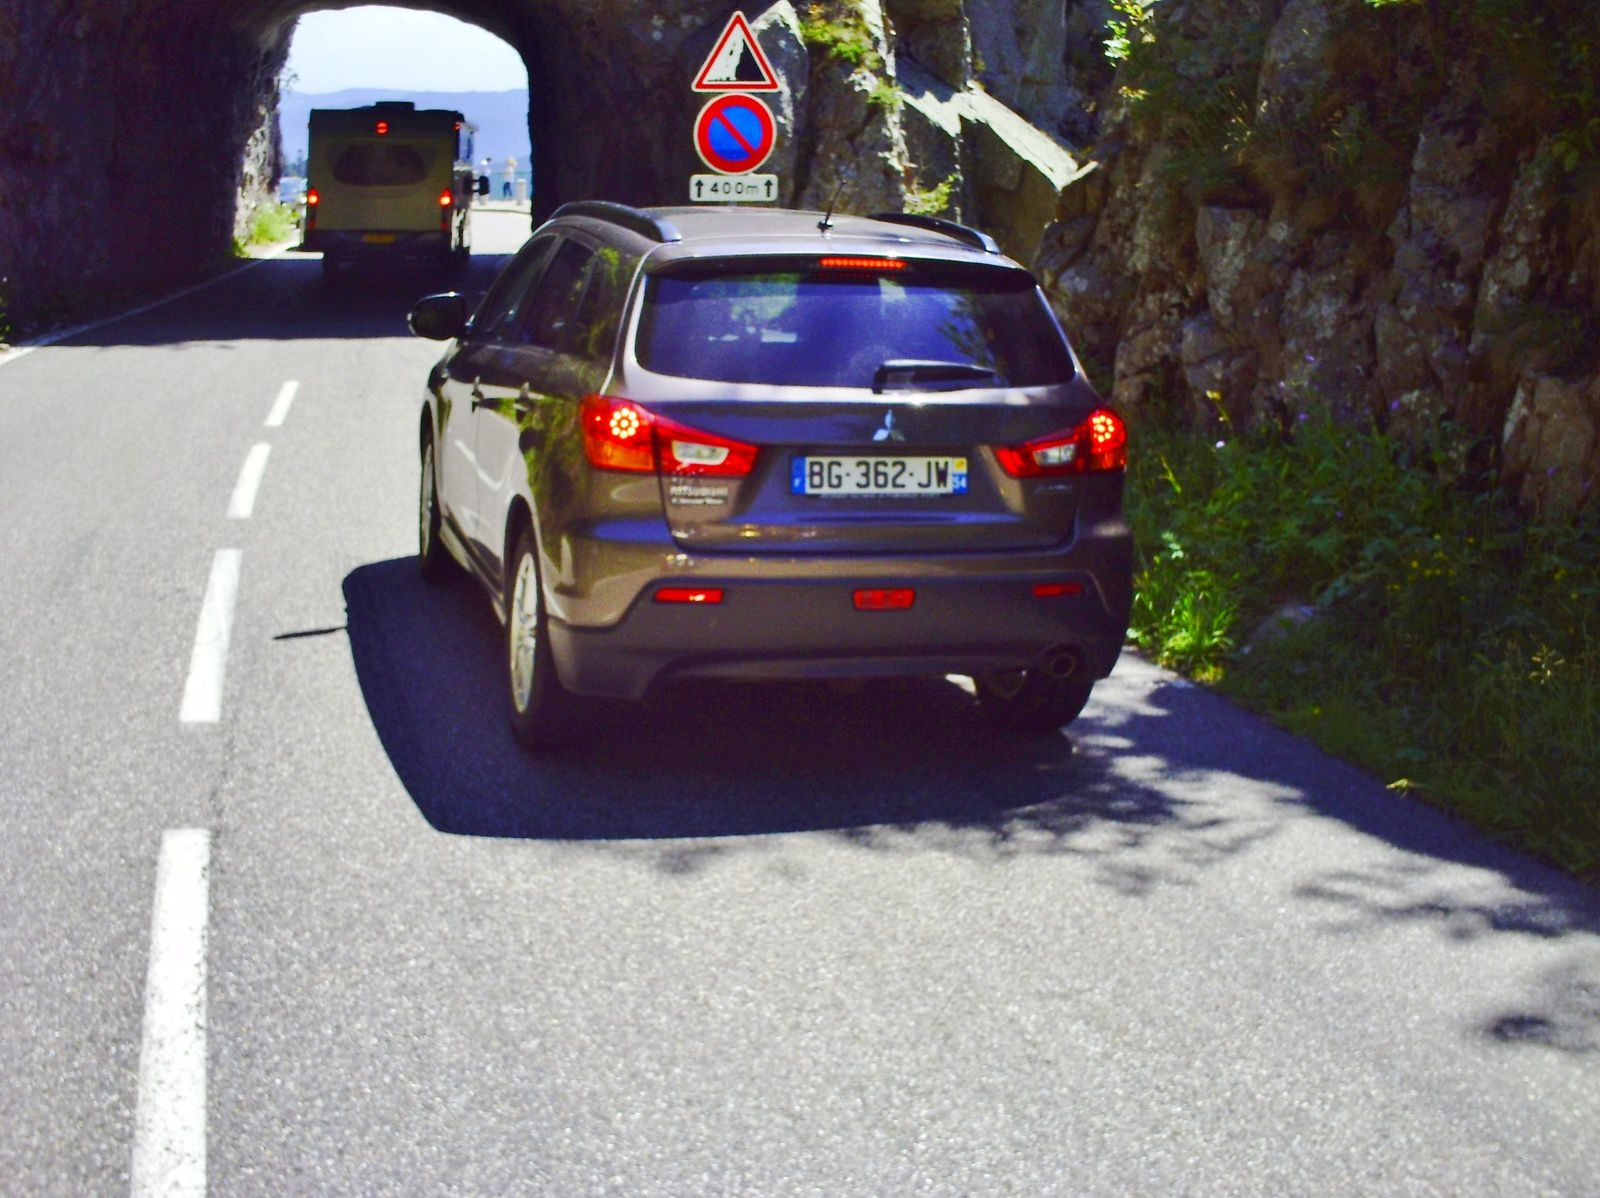 ON DESCEND LE COL DE LA SCHLUCHT......MAUDIT CAMPING CAR